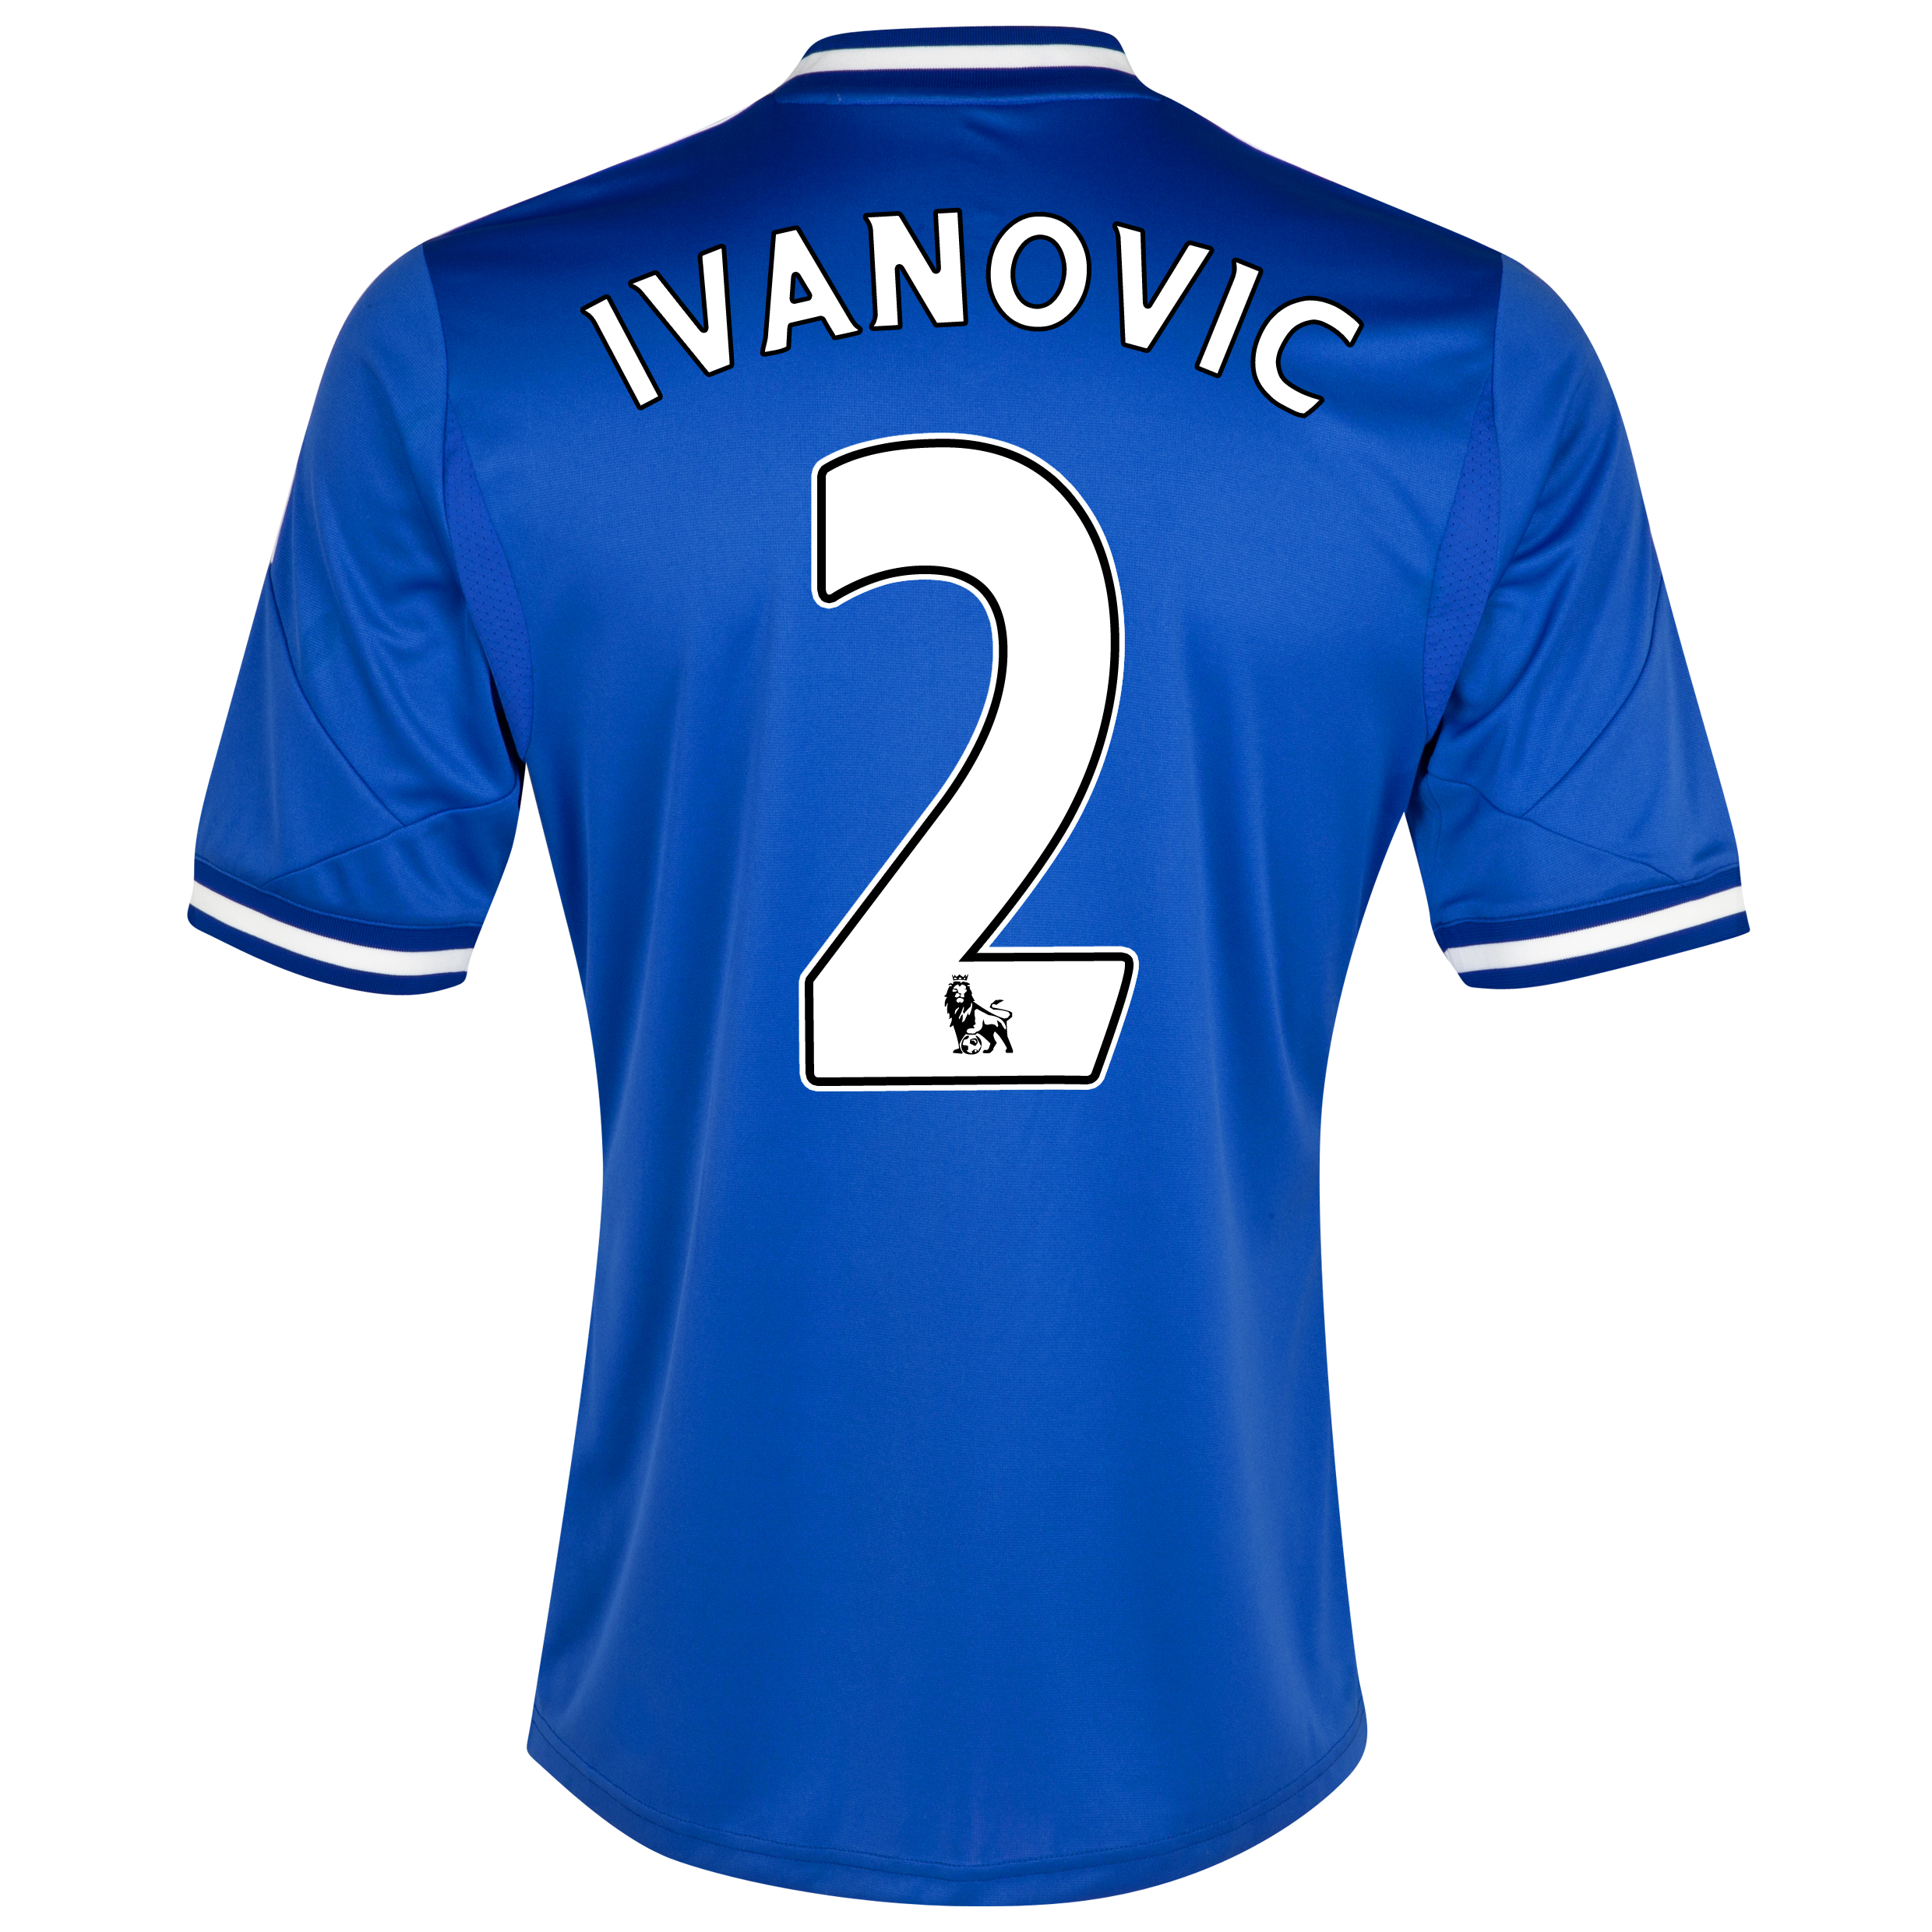 Chelsea Home Shirt 2013/14 with Ivanovic 2 printing